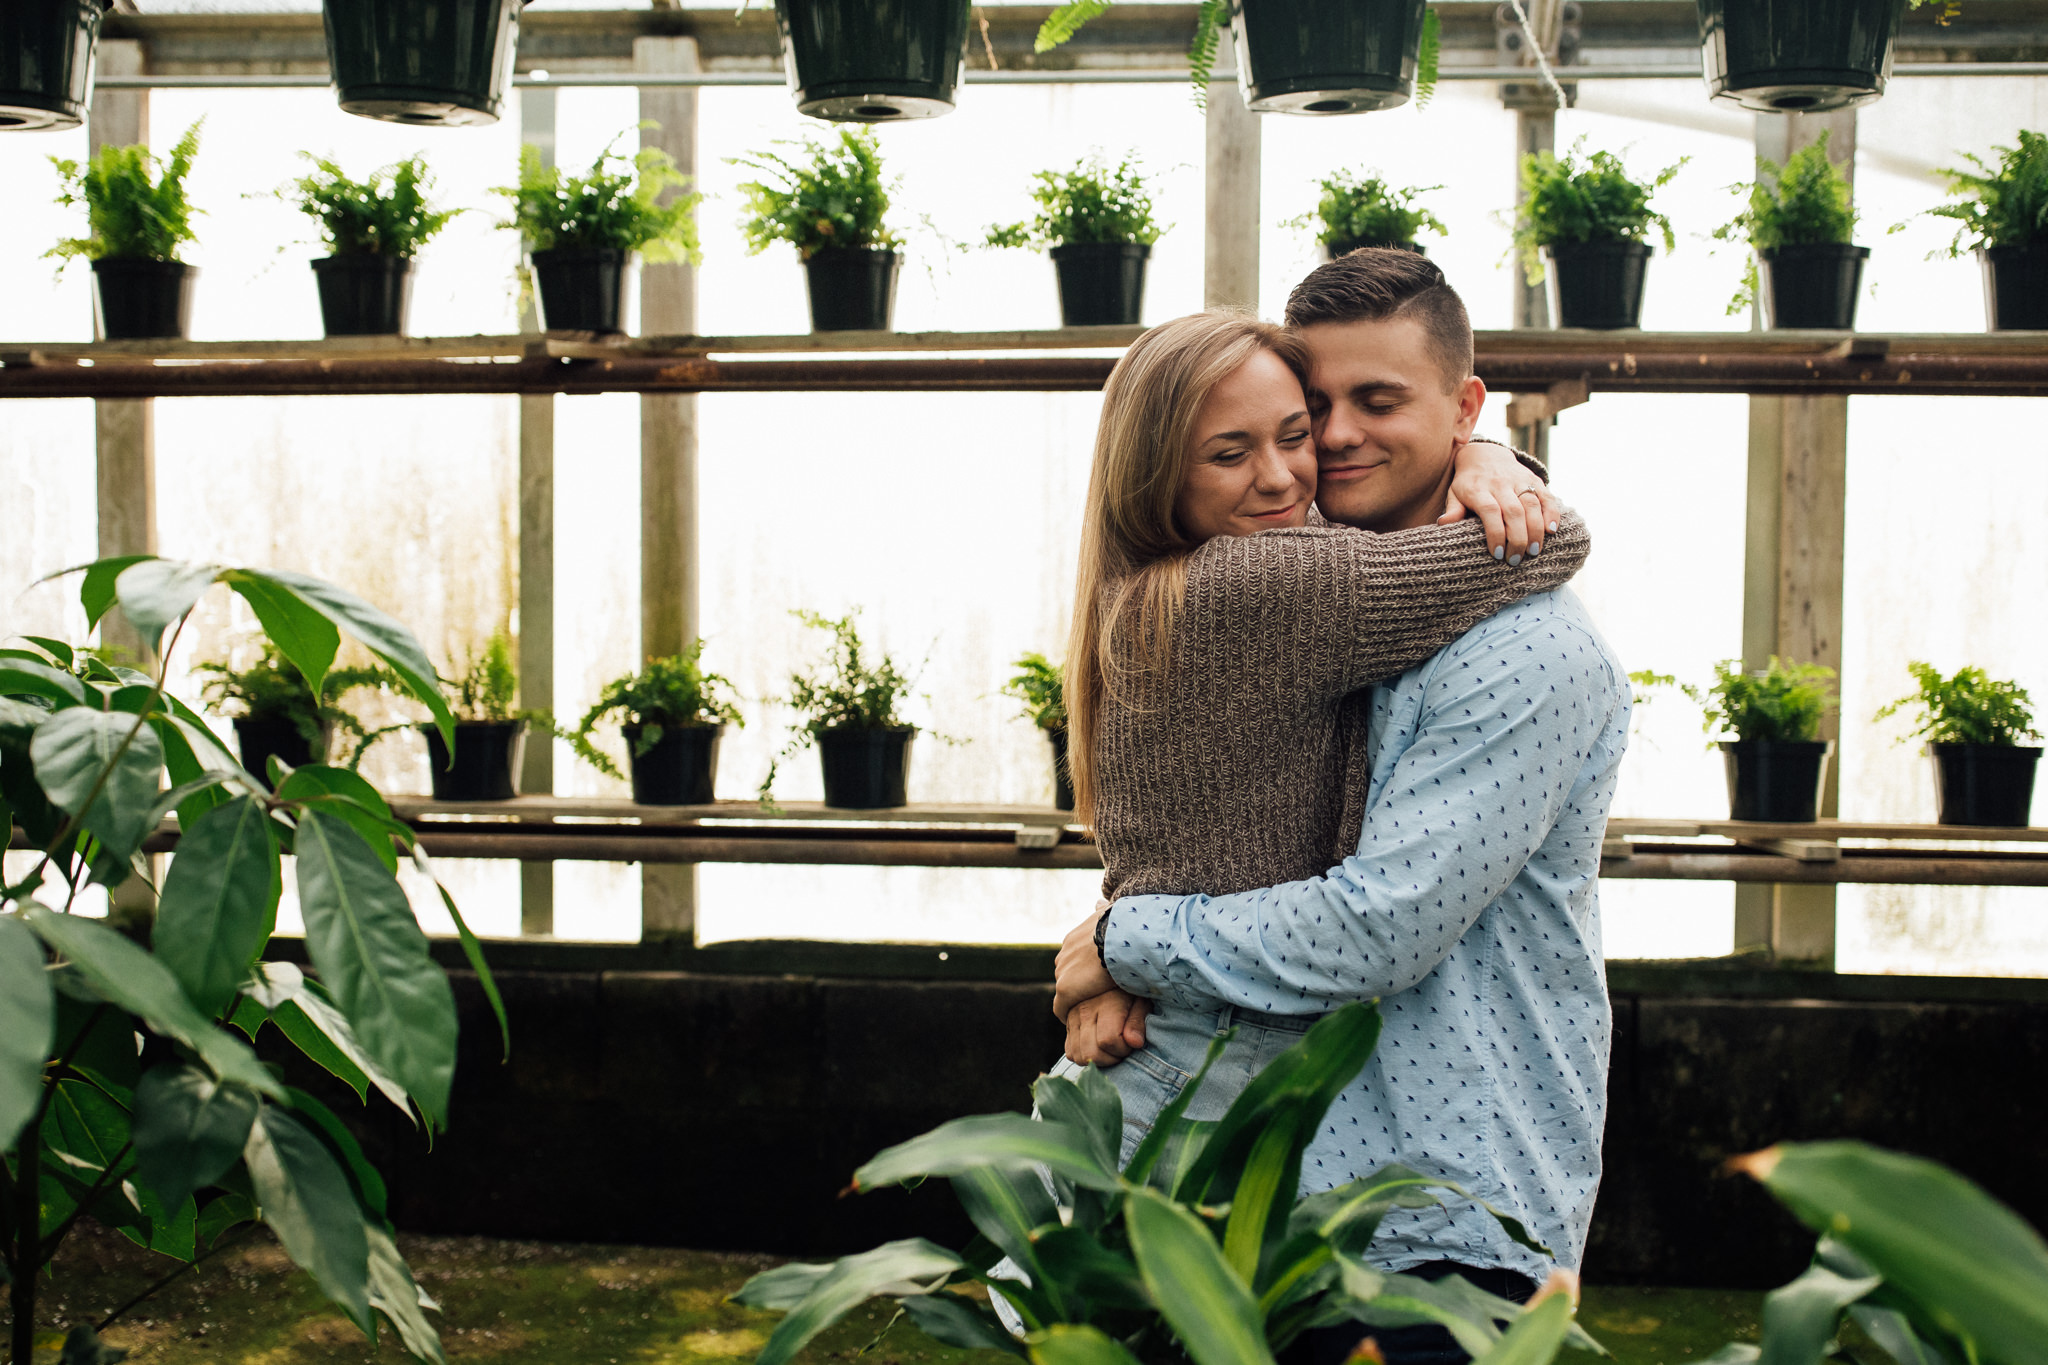 memphis-engagement-photographer-thewarmtharoundyou-greenhouse-engagement-pictures (35 of 118).jpg